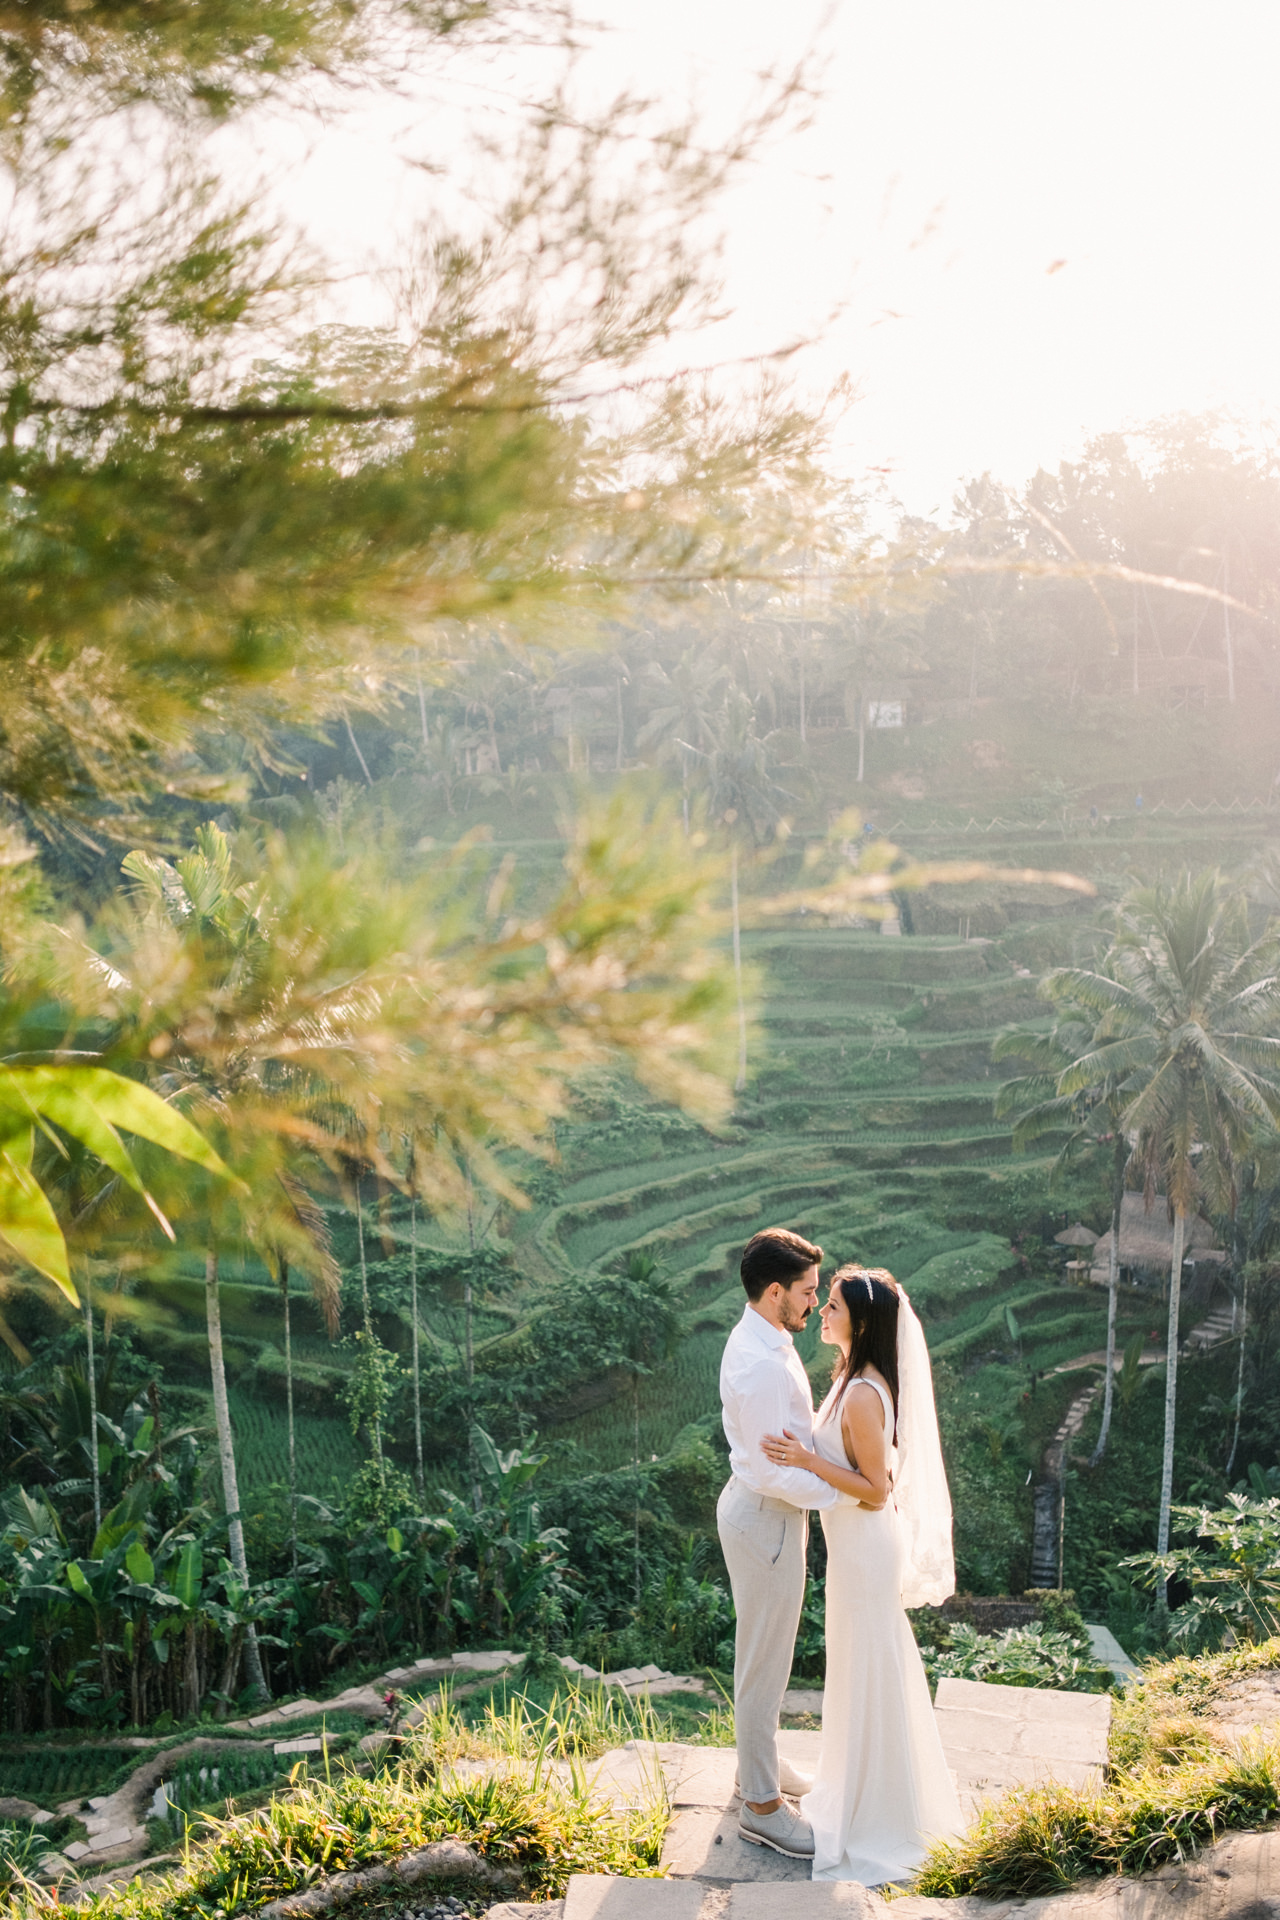 I&E: A Cozy Morning Photoshoot in Bali | Bali Vacation Photographer 5